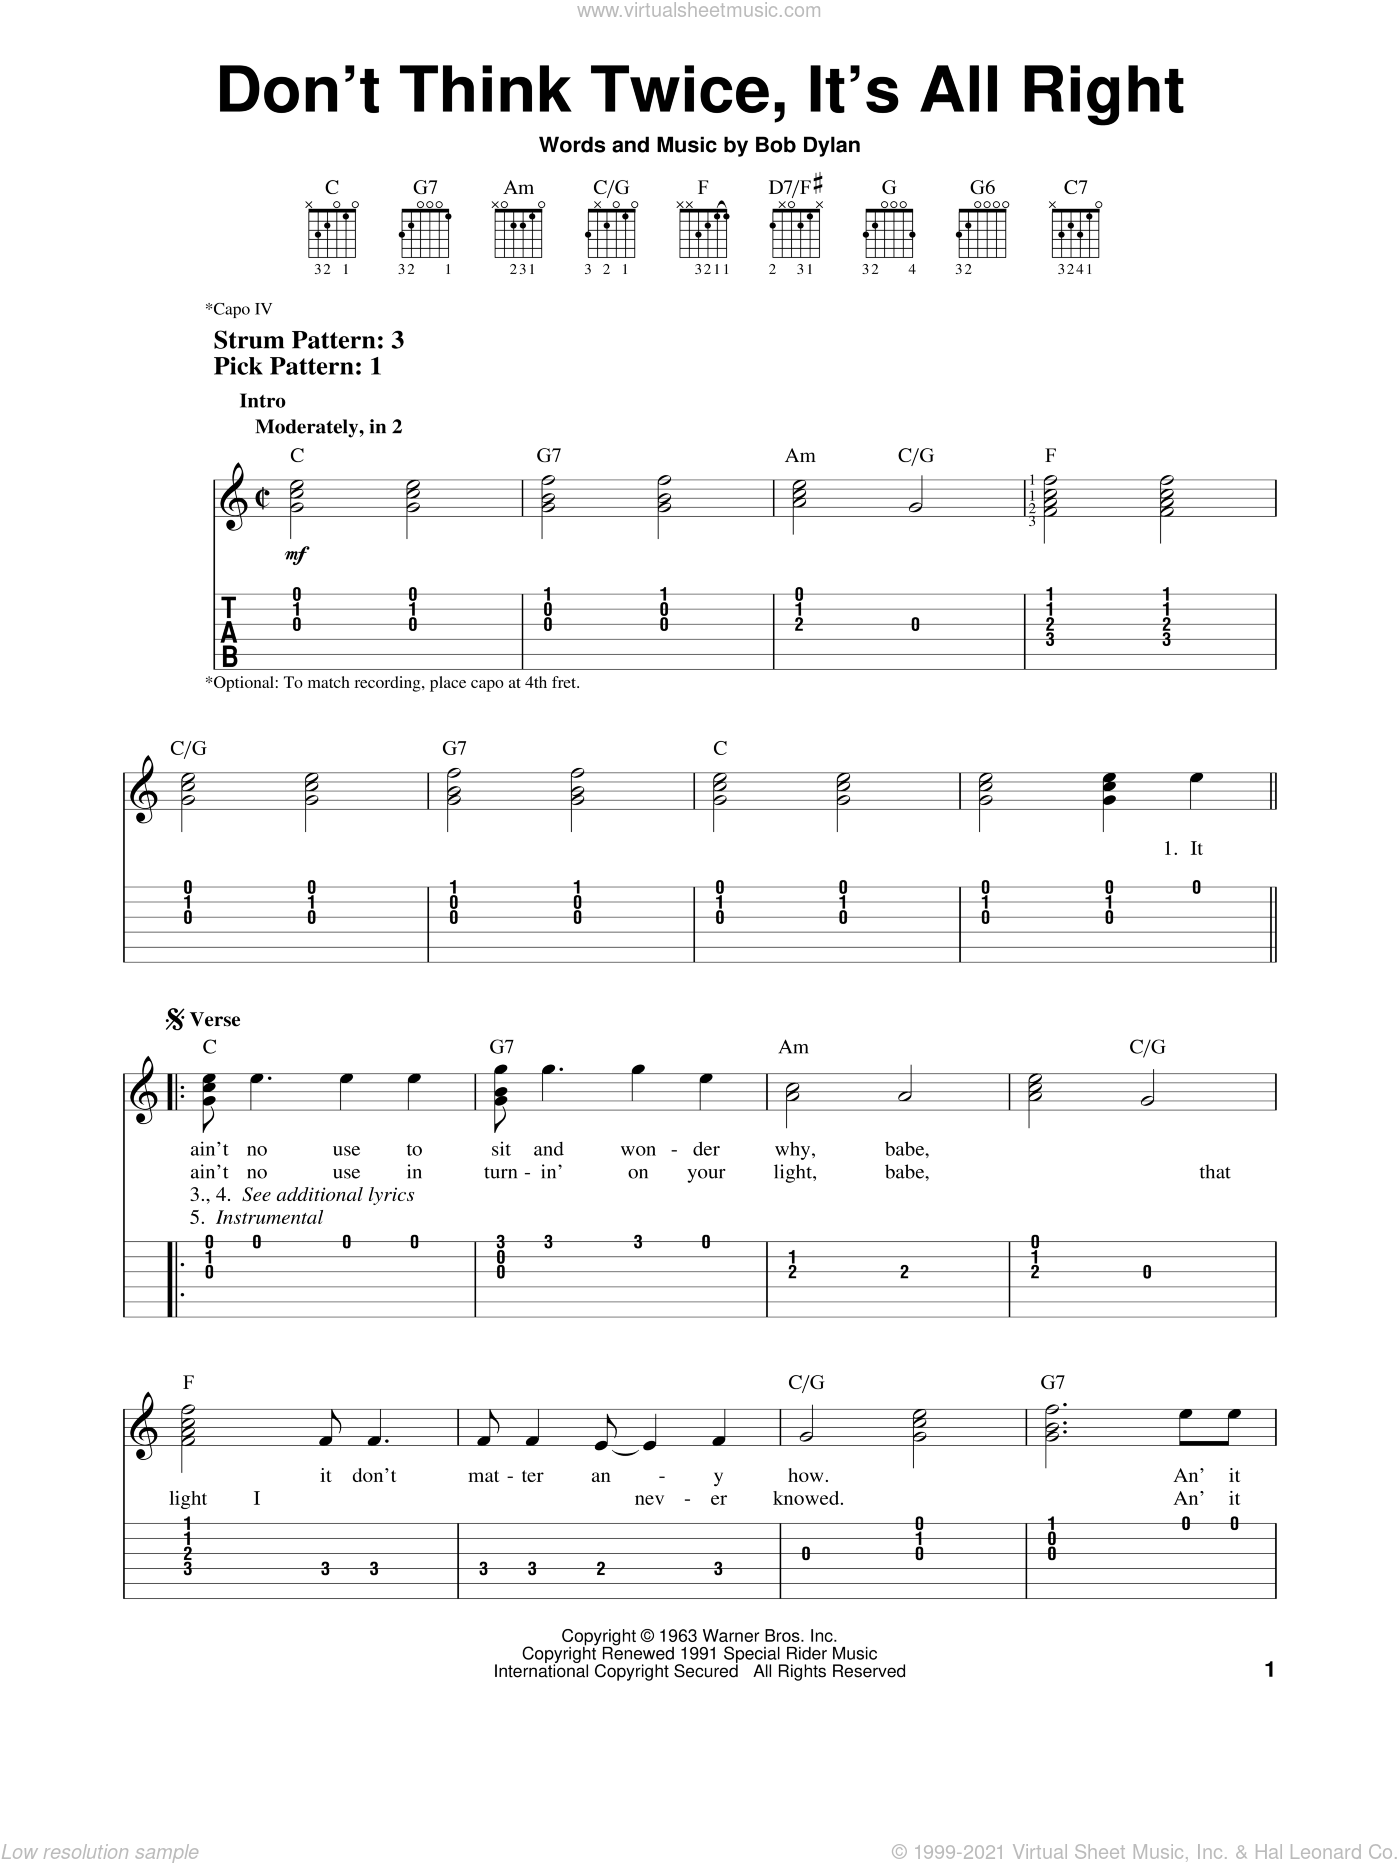 Don't Think Twice, It's All Right sheet music for guitar solo (easy tablature) by Bob Dylan and Peter, Paul & Mary, easy guitar (easy tablature)